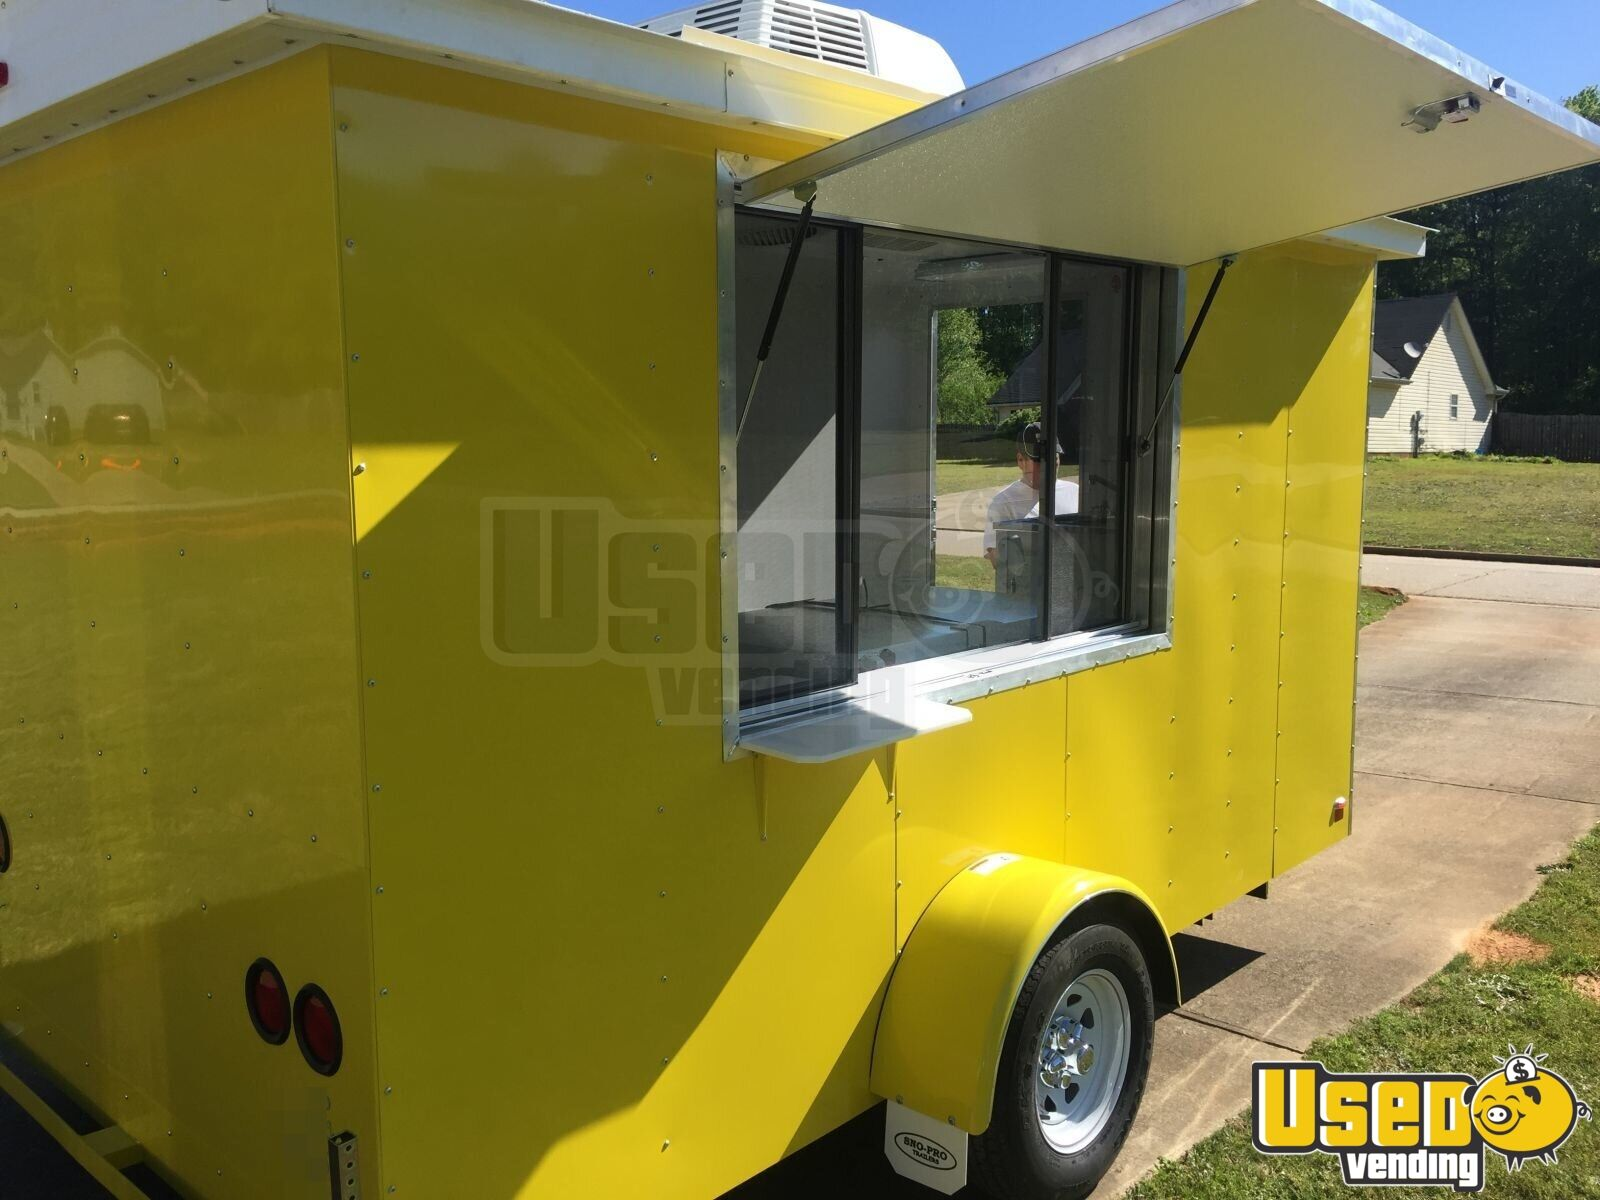 2013 Sno Pro Concession Trailer 21 Alabama for Sale - 21